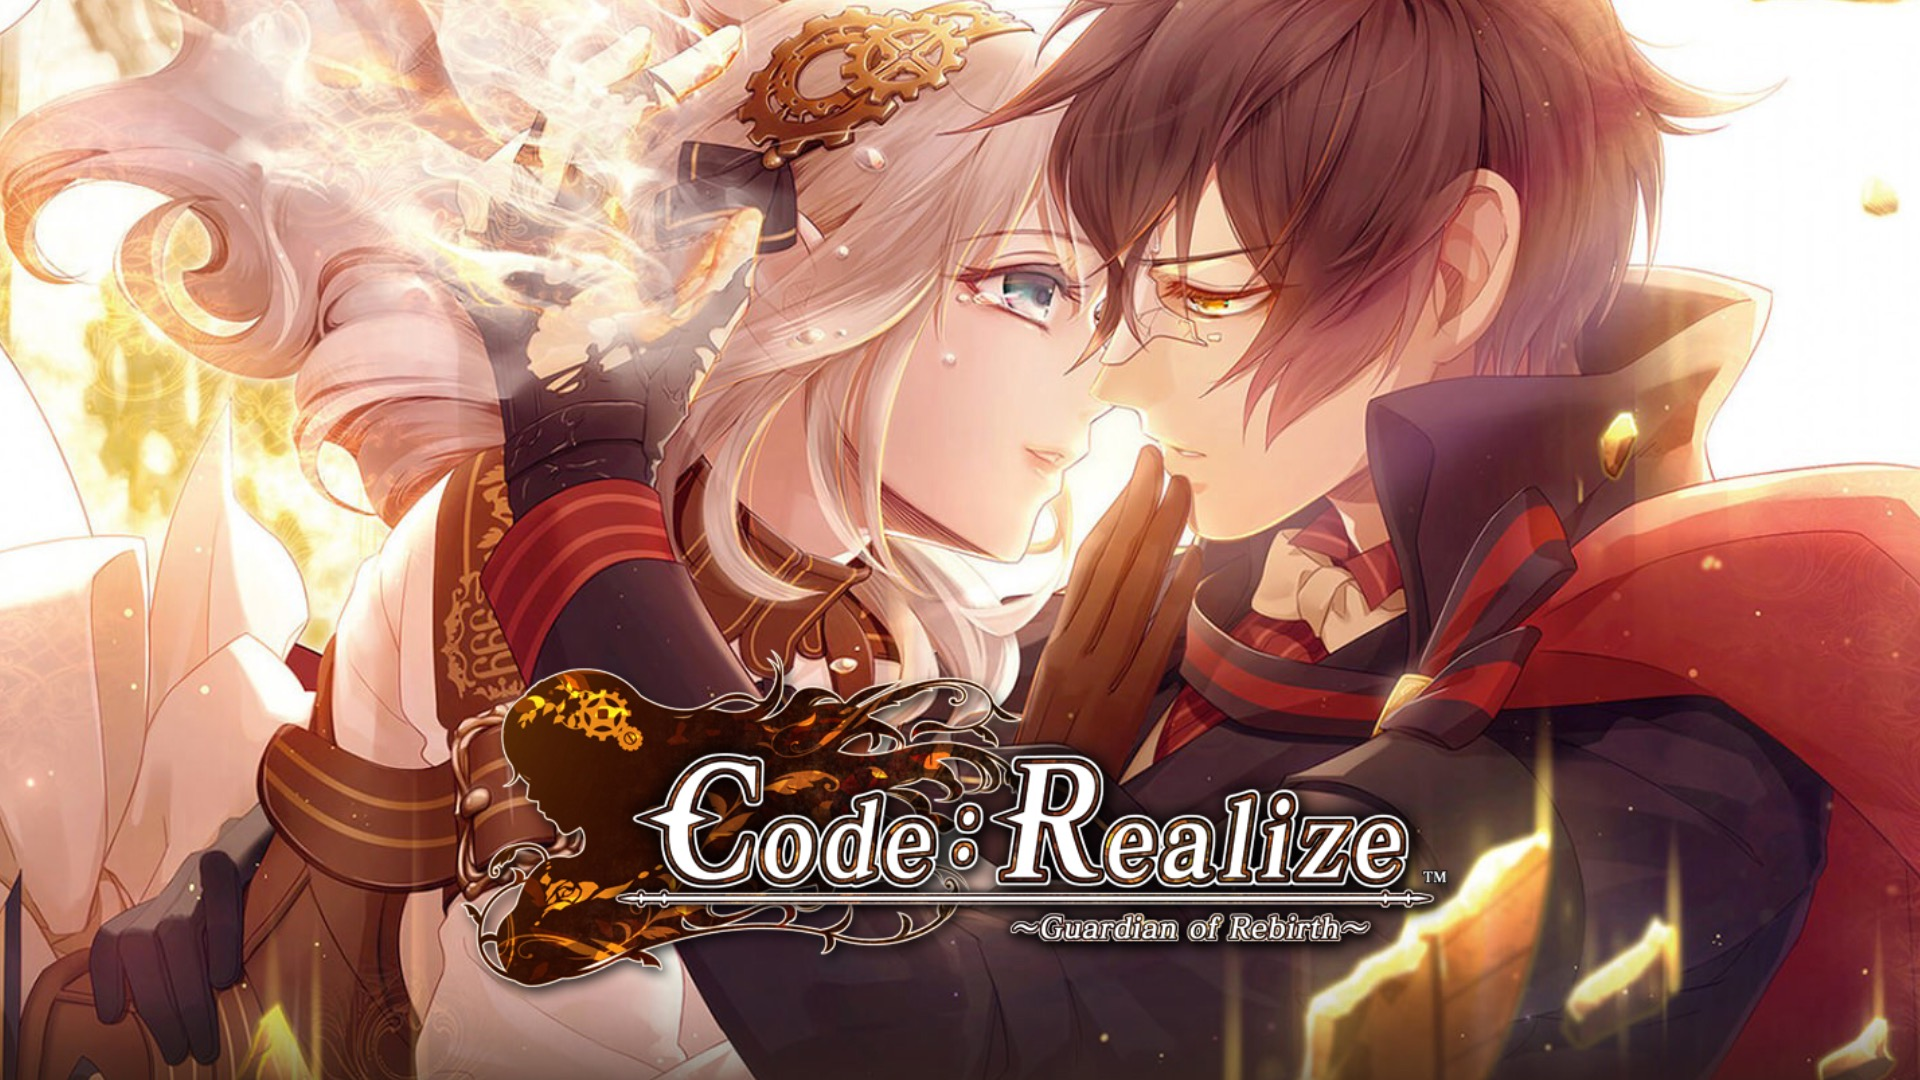 Code: Realize - Guardian of Rebirth Delayed to February 2020 on Nintendo Switch. Collector's Edition Announced • The Mako Reactor